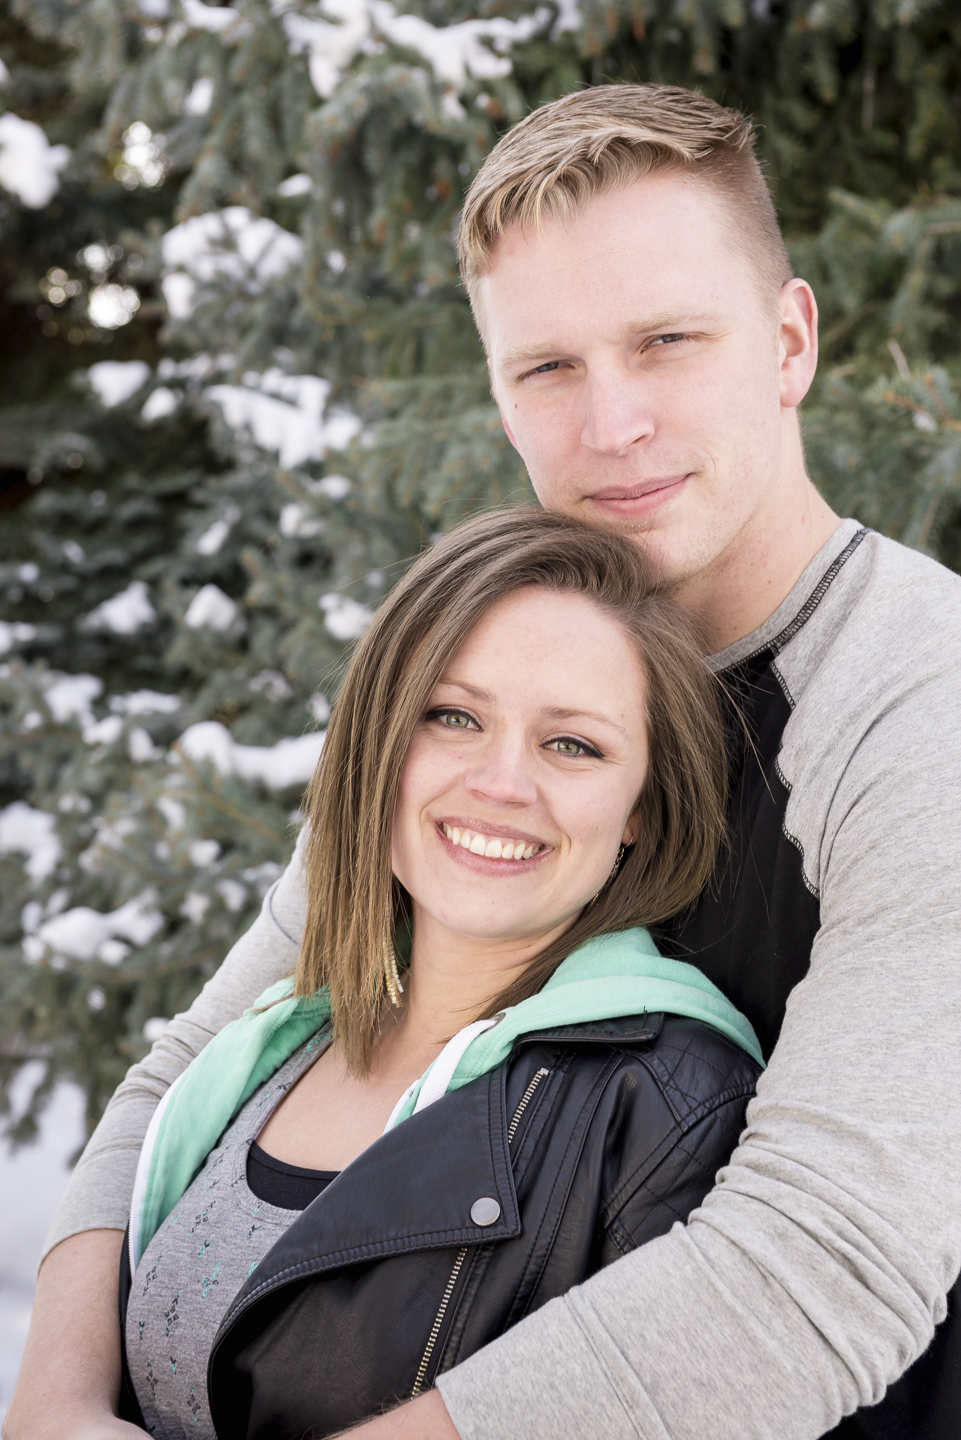 savage_couple_portrait_snow_pine_utah_Christin-2.jpg